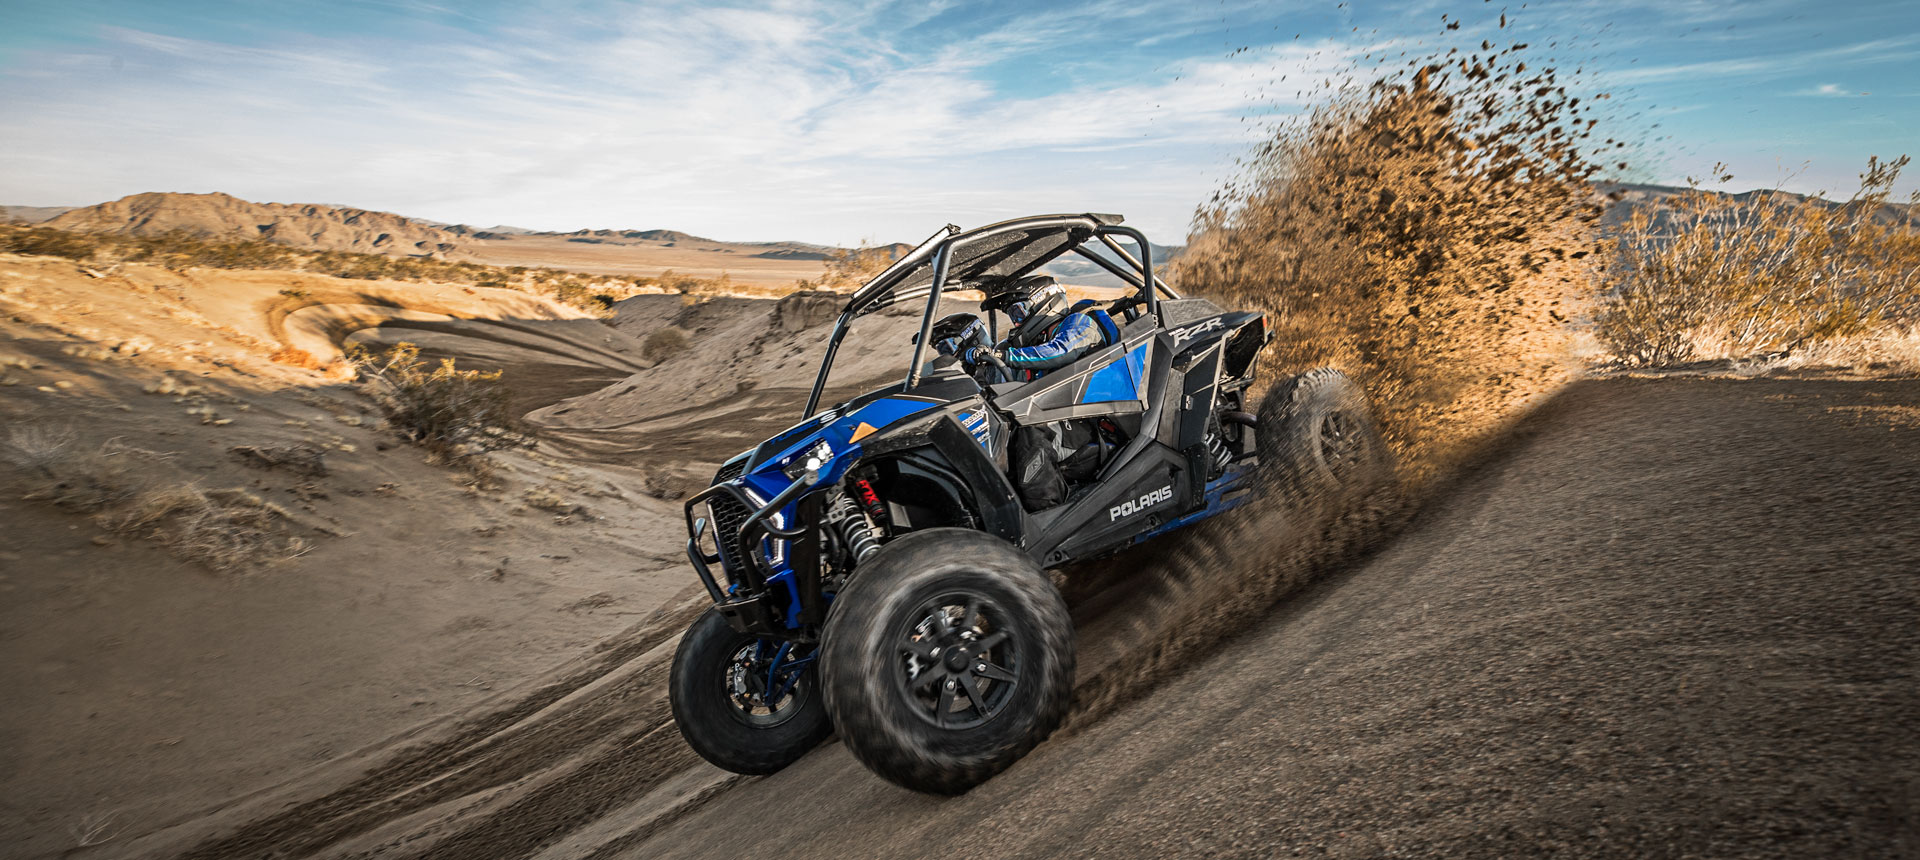 rzr-turbo-s-location-9-lg